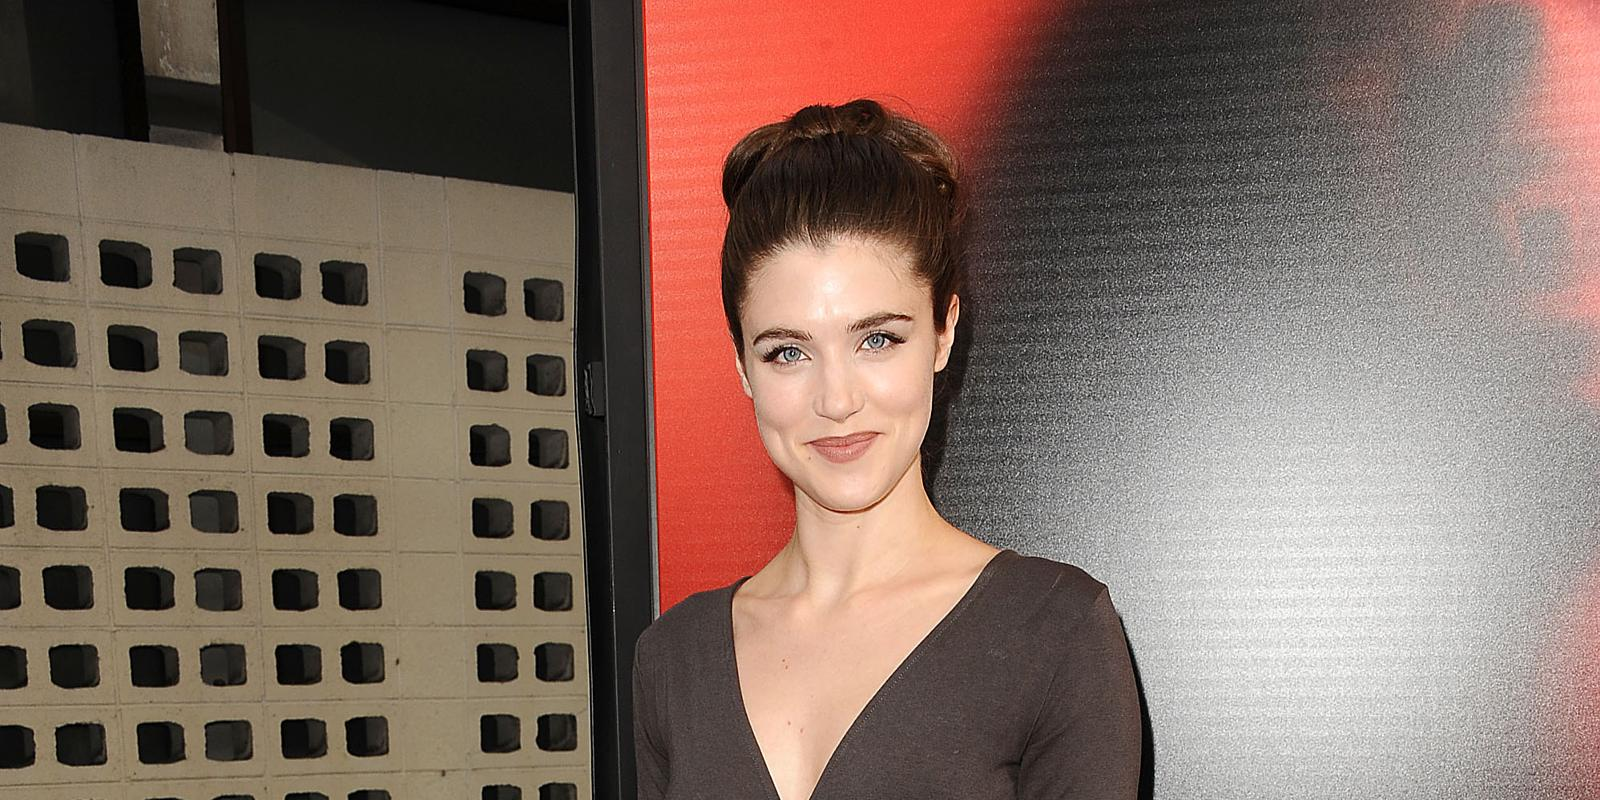 lucy griffiths gallerylucy griffiths instagram, lucy griffiths vk, lucy griffiths model, lucy griffiths preacher, lucy griffiths robin hood, lucy griffiths imdb, lucy griffiths linkedin, lucy griffiths wiki, lucy griffiths facebook, lucy griffiths twitter, lucy griffiths alexander skarsgard, lucy griffiths, lucy griffiths constantine, lucy griffiths boyfriend, lucy griffiths 2015, lucy griffiths fansite, lucy griffiths height, lucy griffiths gallery